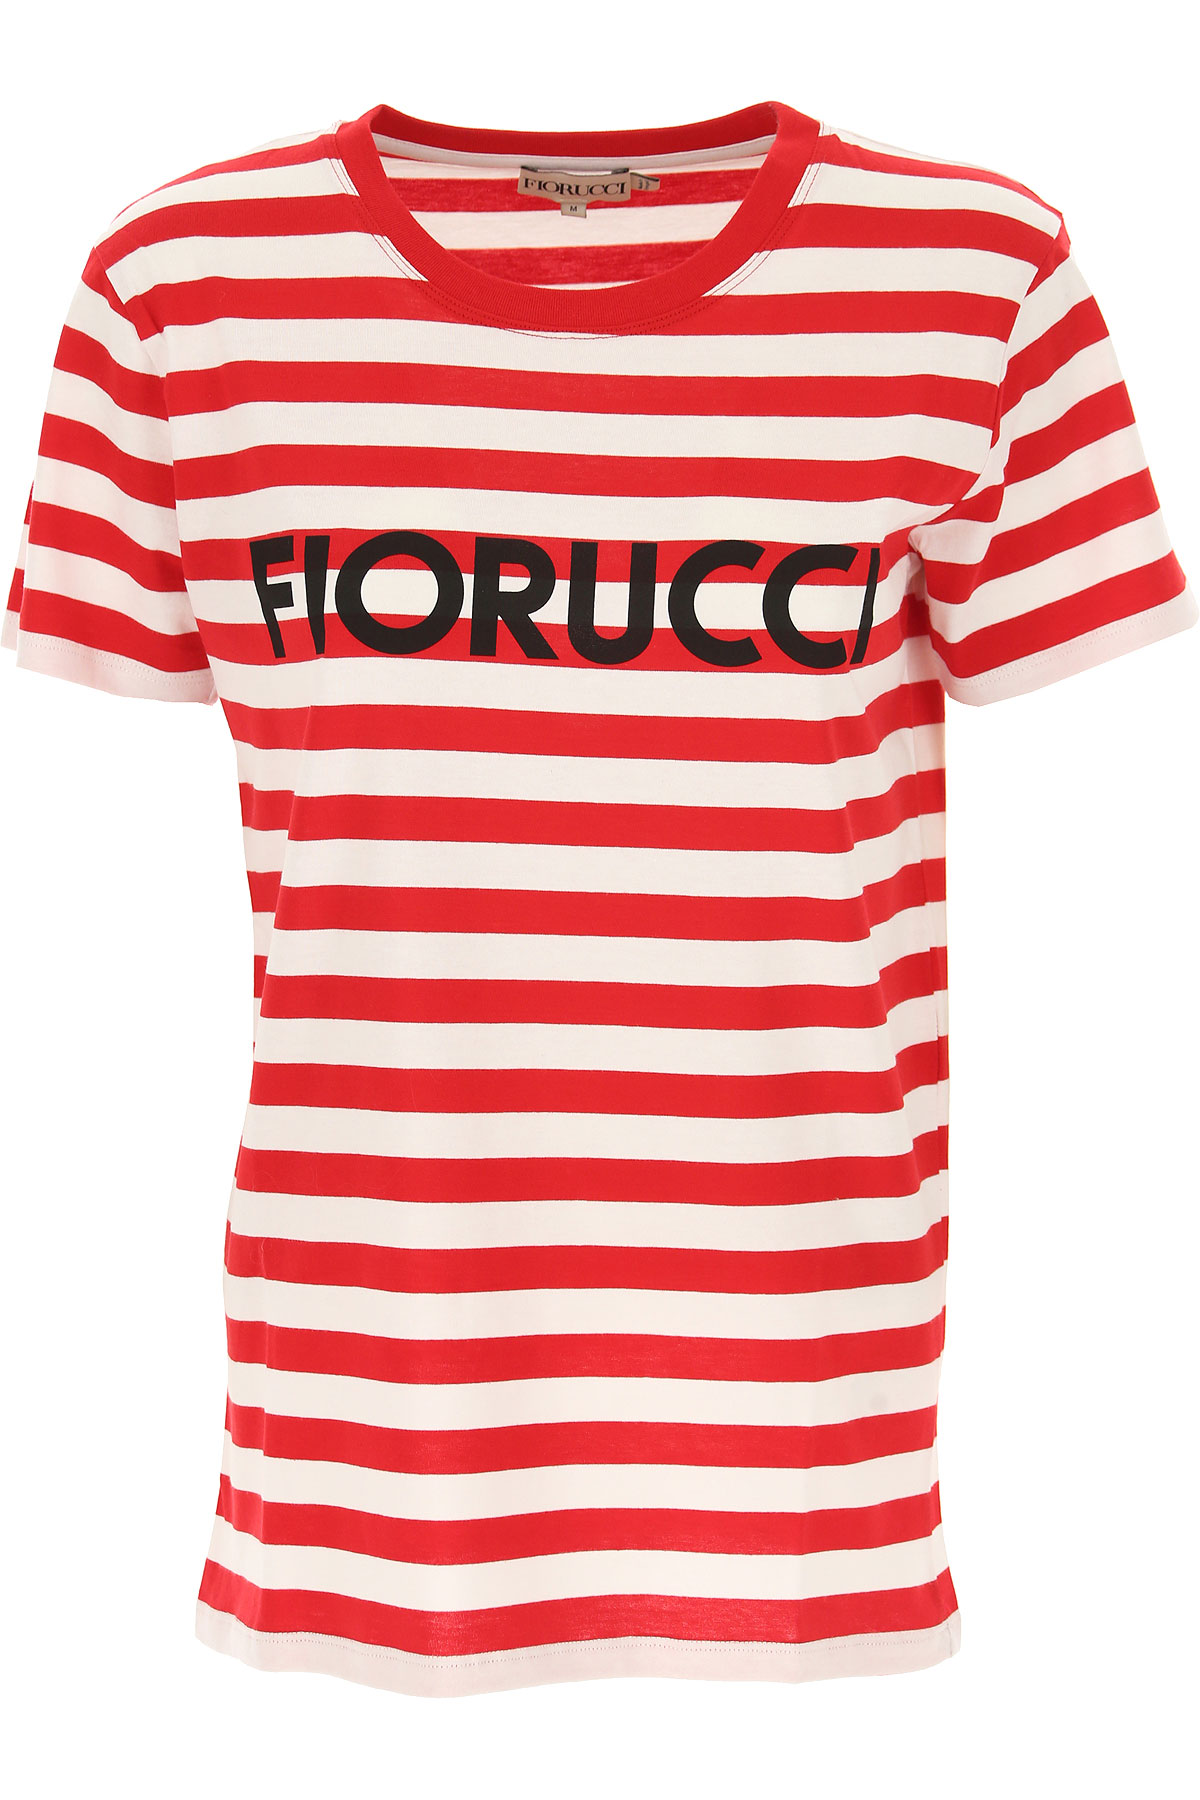 Fiorucci T-Shirt for Women On Sale, Red, Cotton, 2019, 4 6